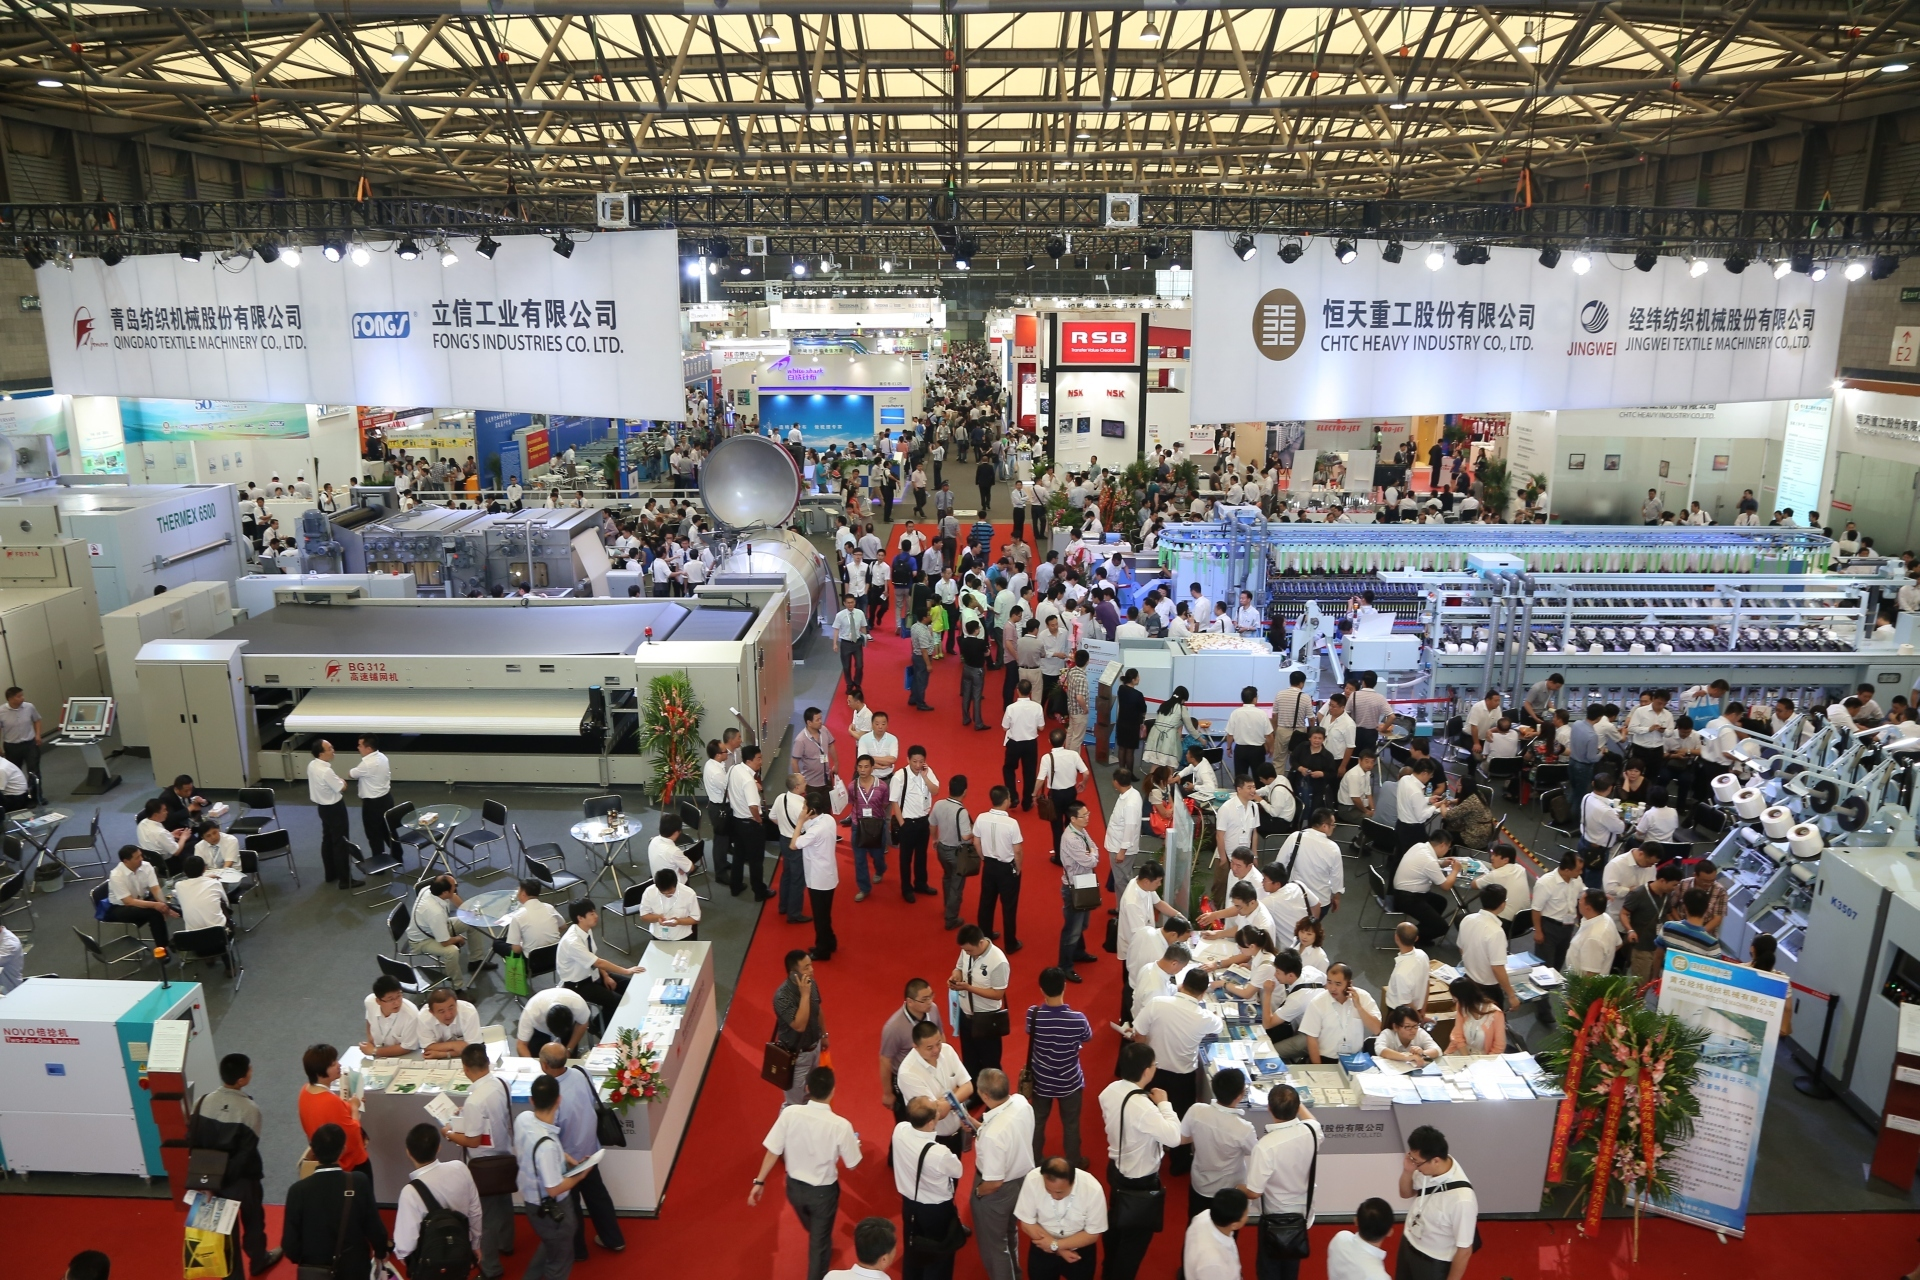 D Printing Exhibition China : Shanghaitex is going green